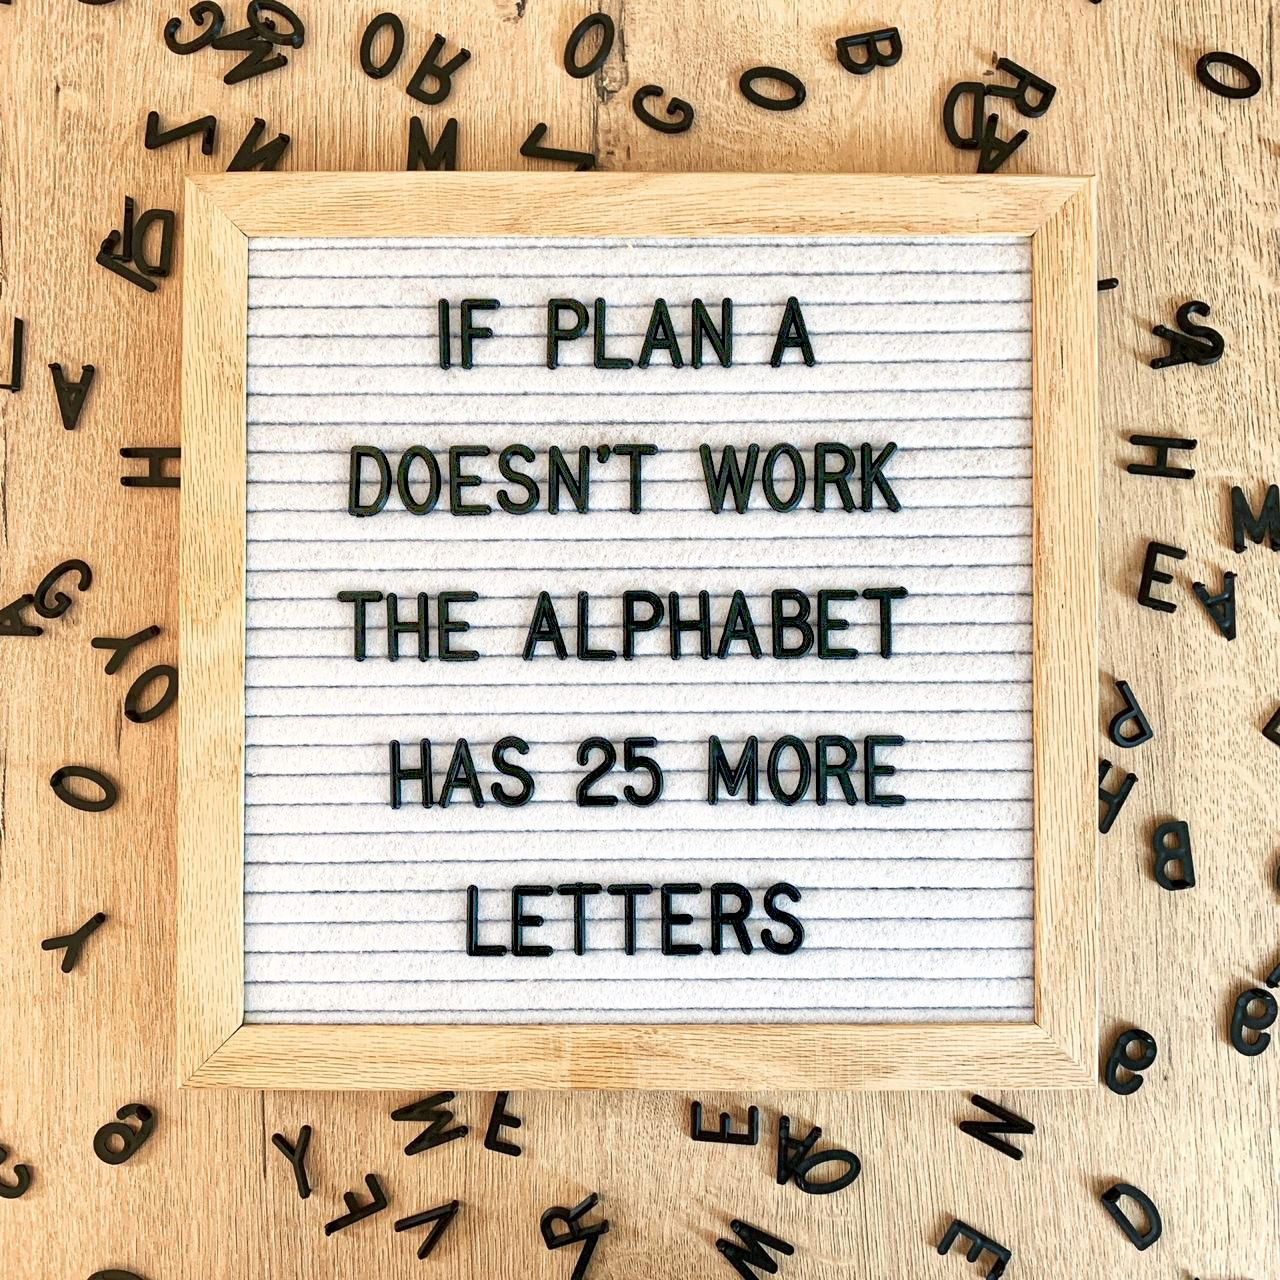 Chin up and try again! #plana #planb #makeaplan #workharder #worksmarter #nevergiveup #alphabet